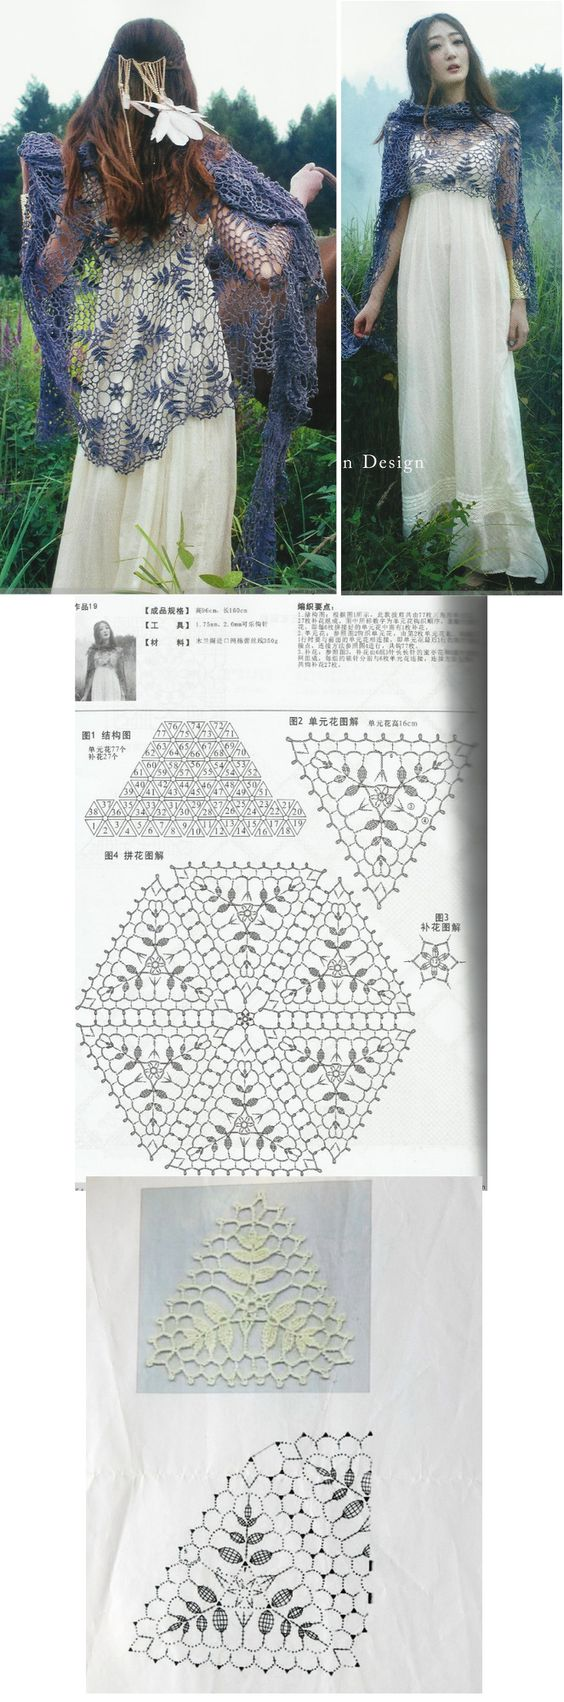 lacy etheral crochet shawl made out of triangles! I have to make this! The only questions are who for and what colour :-)